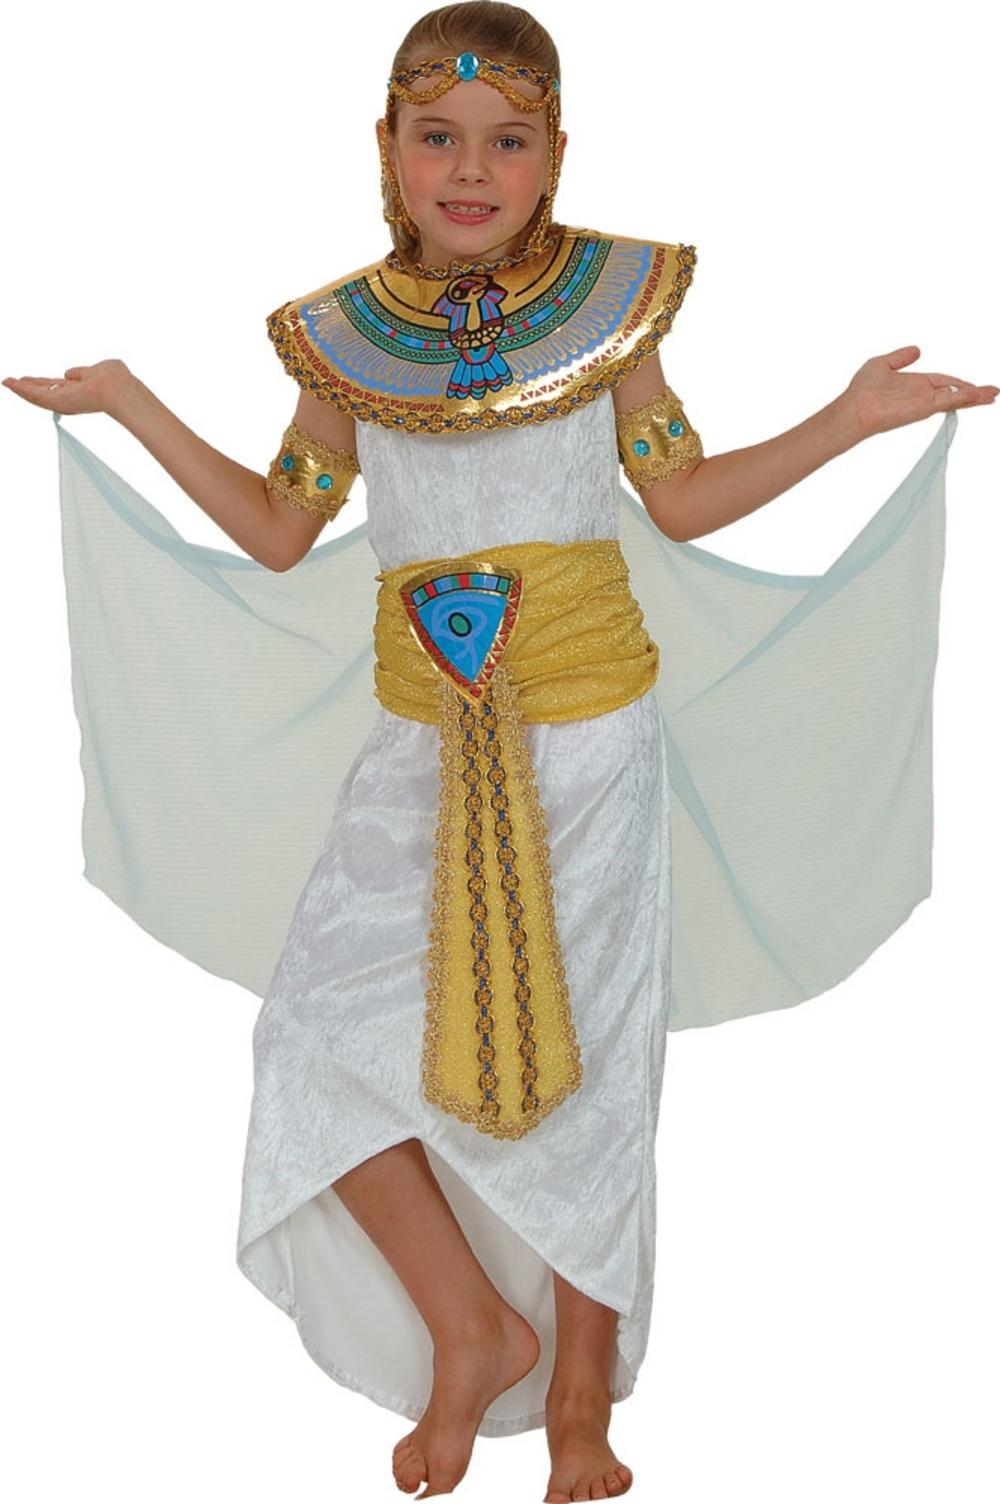 Deluxe Cleopatra Costume  sc 1 st  Mega Fancy Dress : cleopatra pictures costumes  - Germanpascual.Com